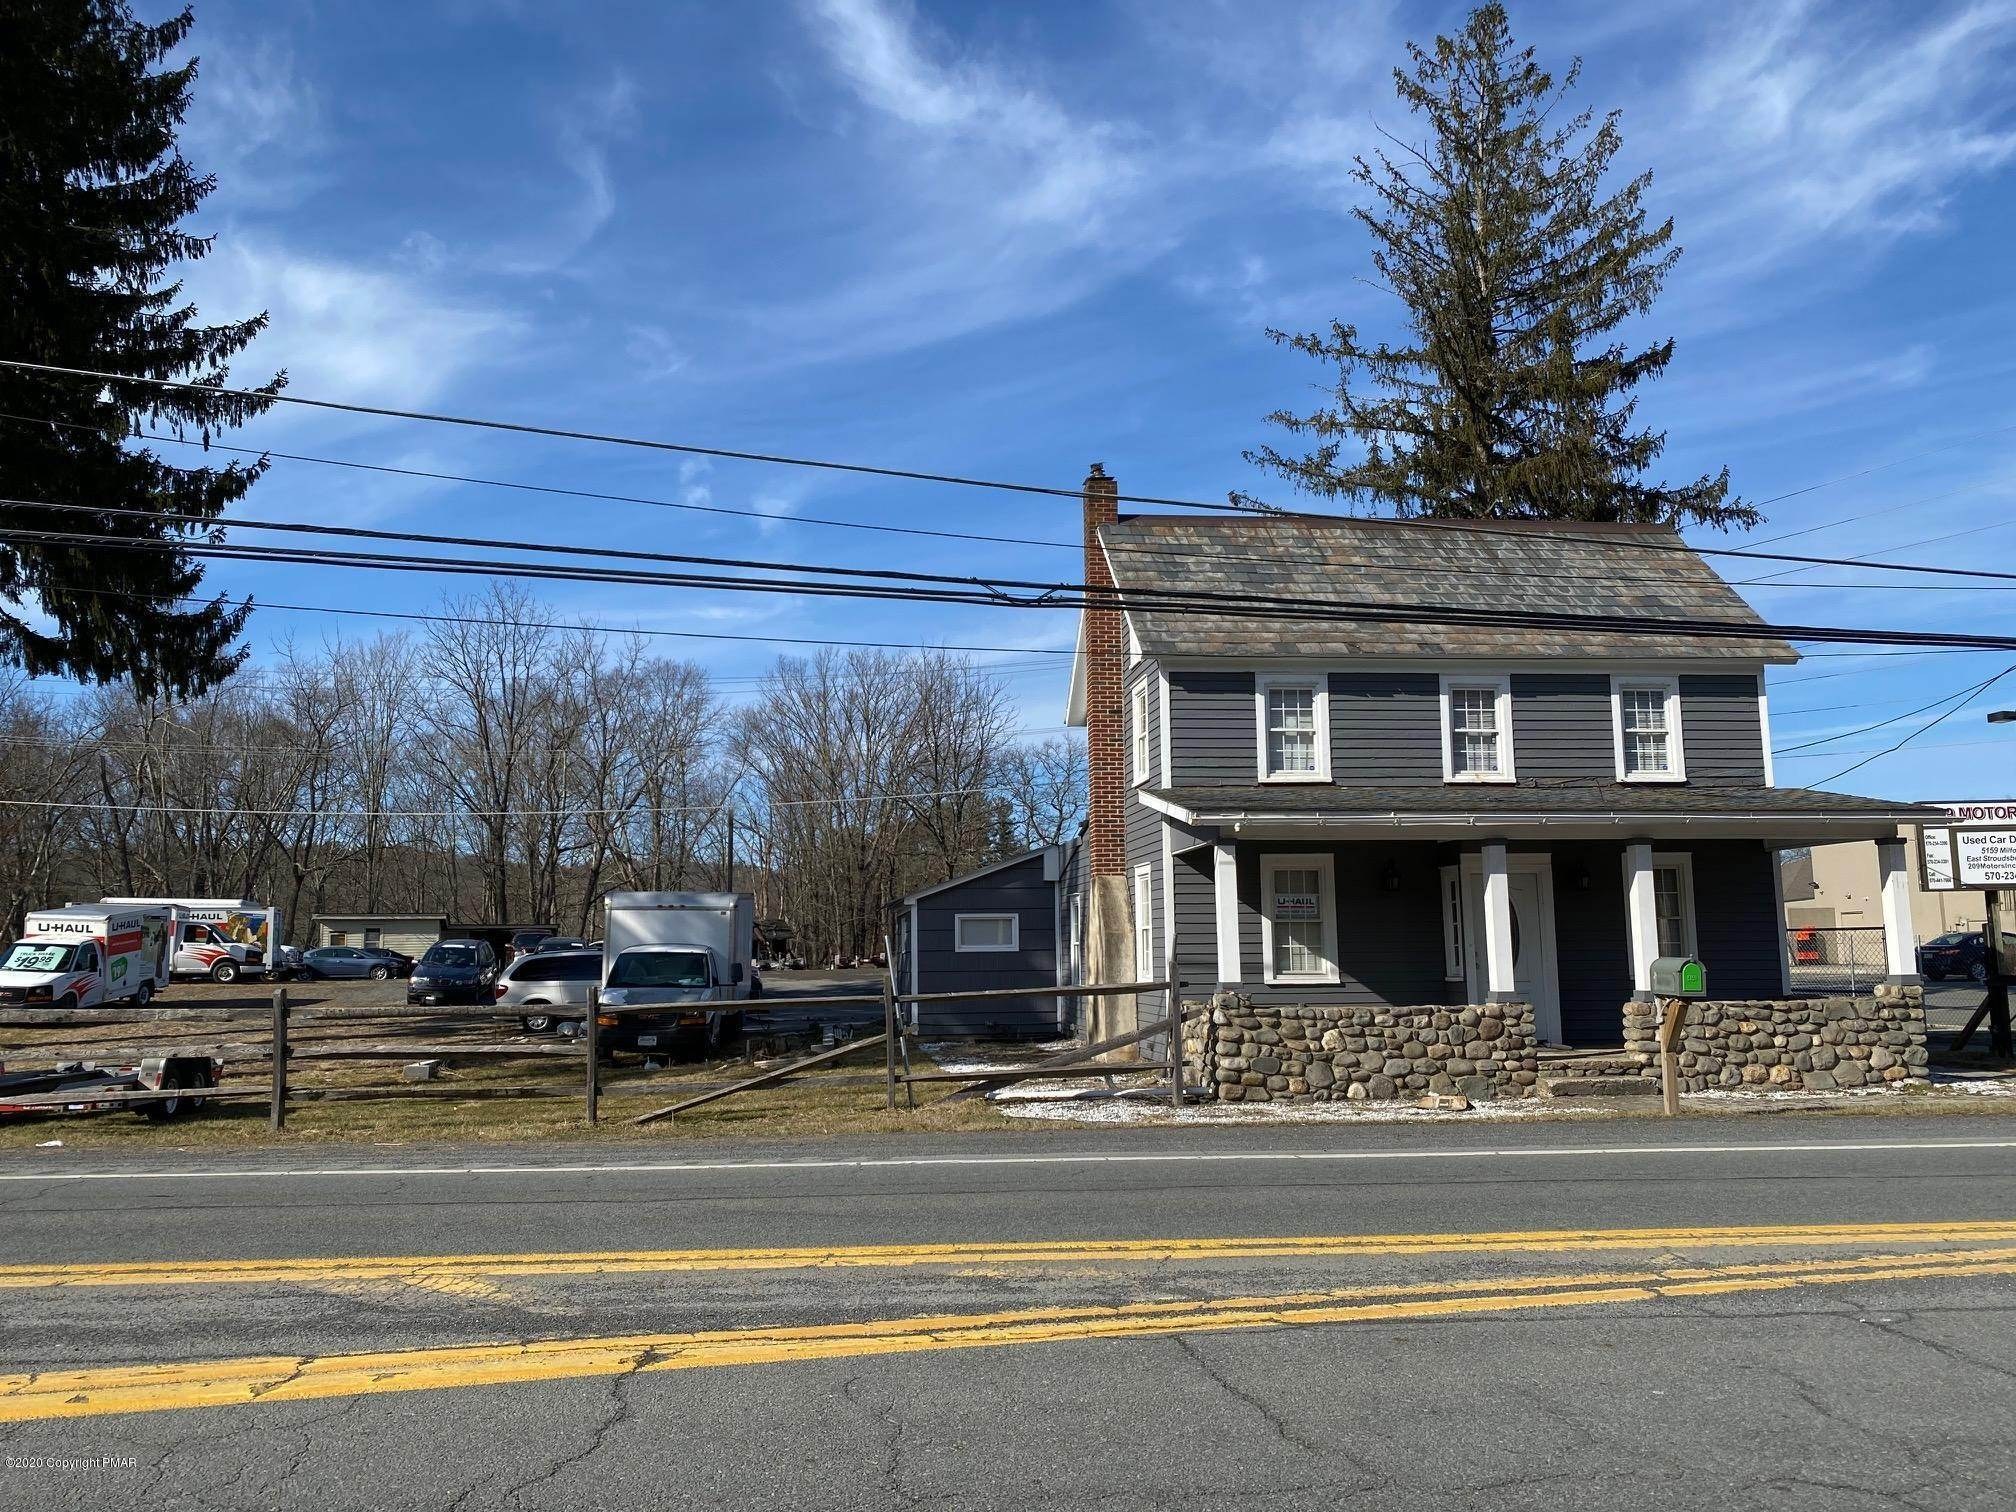 2. Commercial for Sale at 5159 Milford Rd East Stroudsburg, Pennsylvania 18301 United States